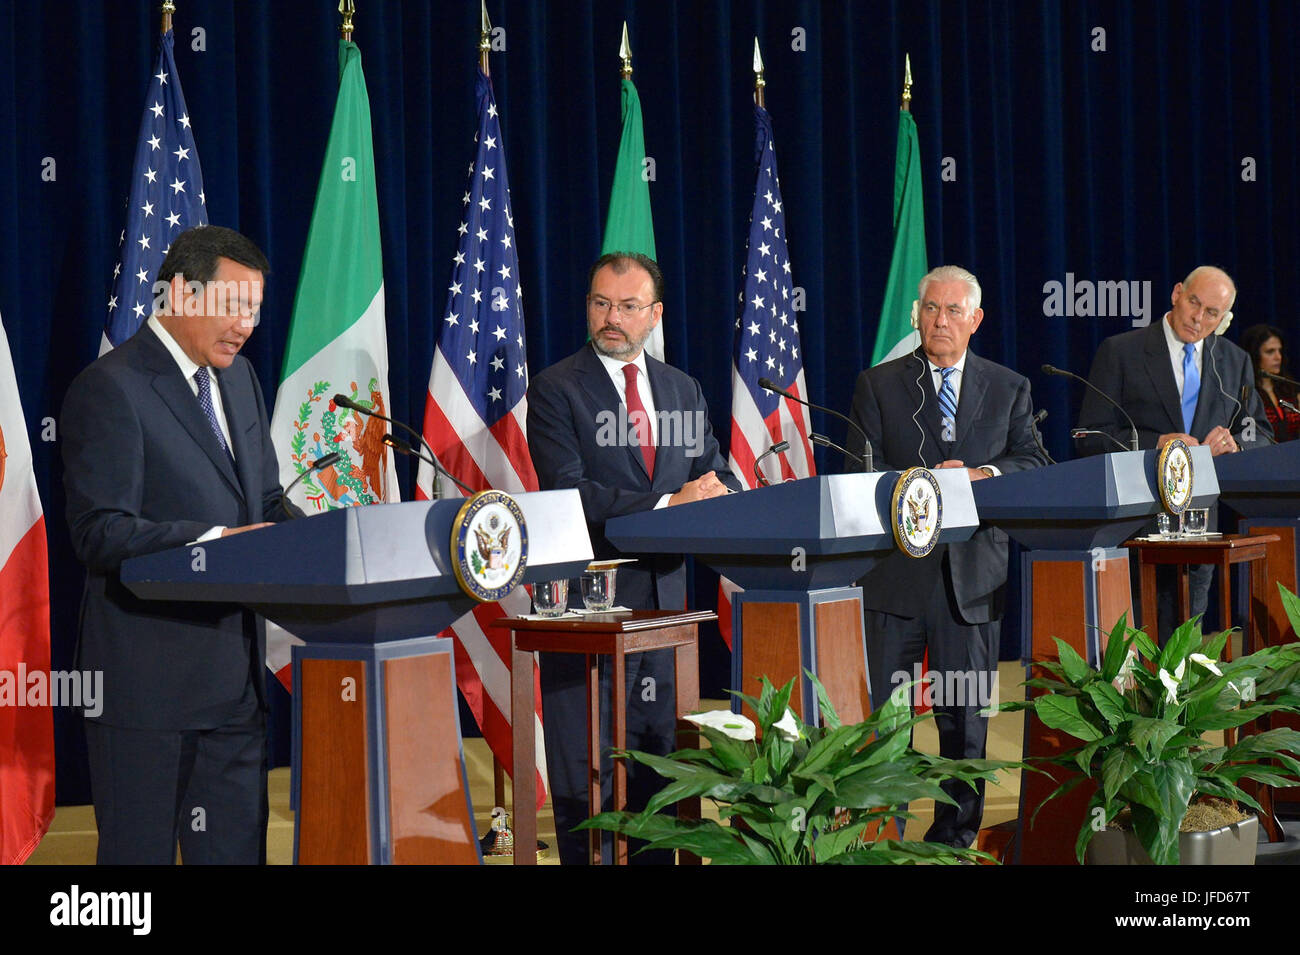 U.S. Secretary of State Rex Tillerson, U.S. Secretary of Homeland Security John F. Kelly, and Mexican Foreign Secretary - Stock Image